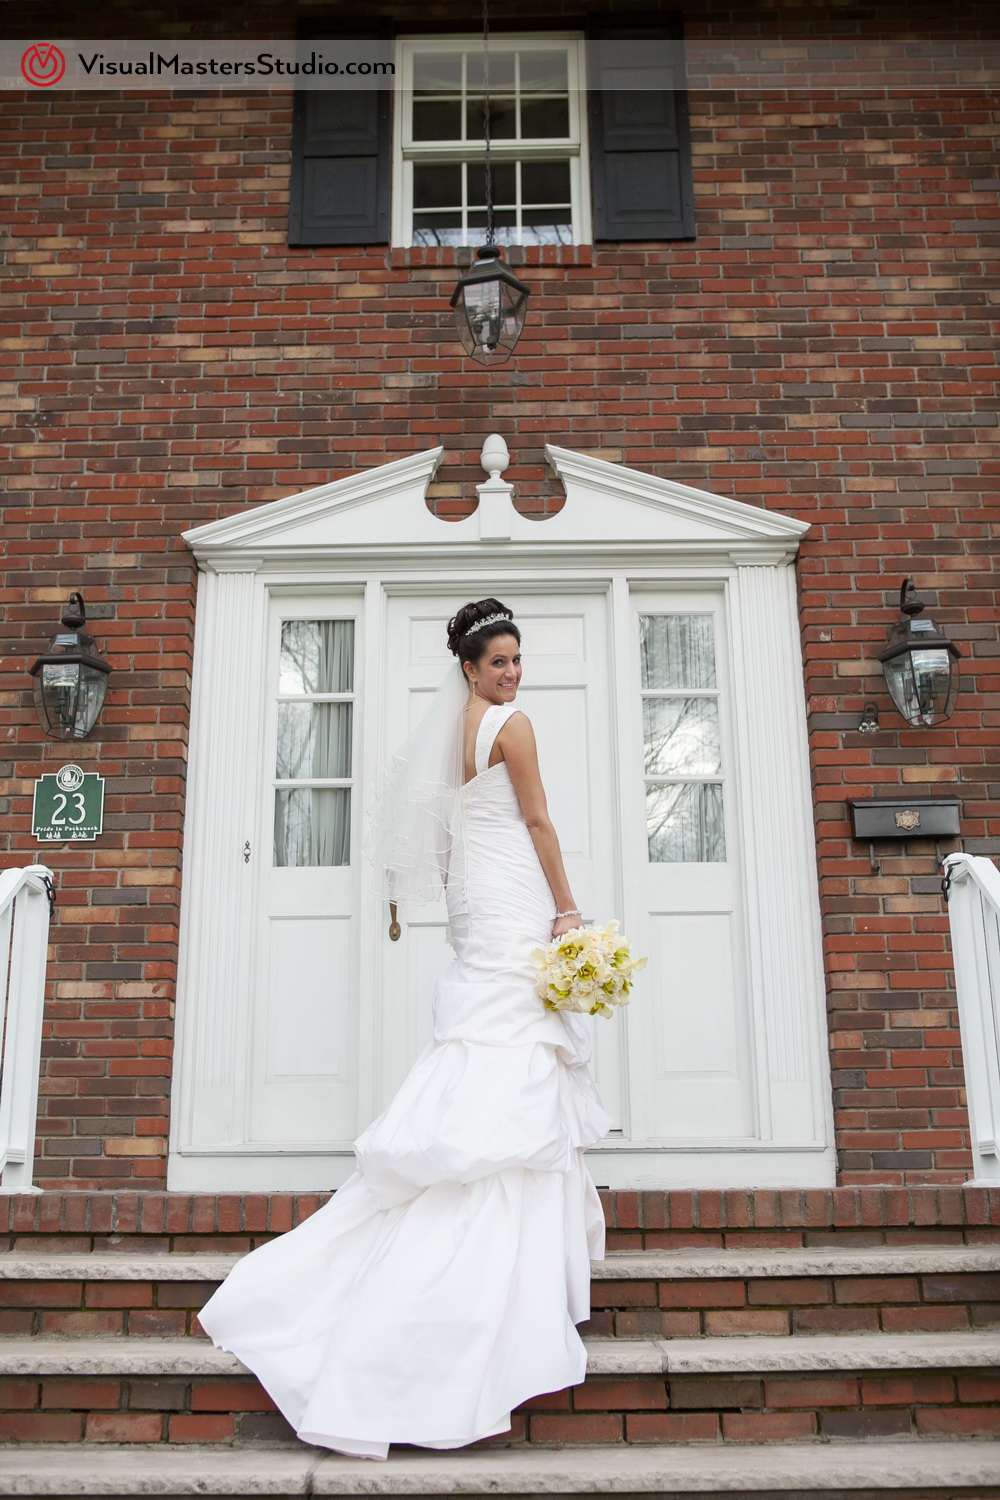 Bride Infront of her House by Visual Masters